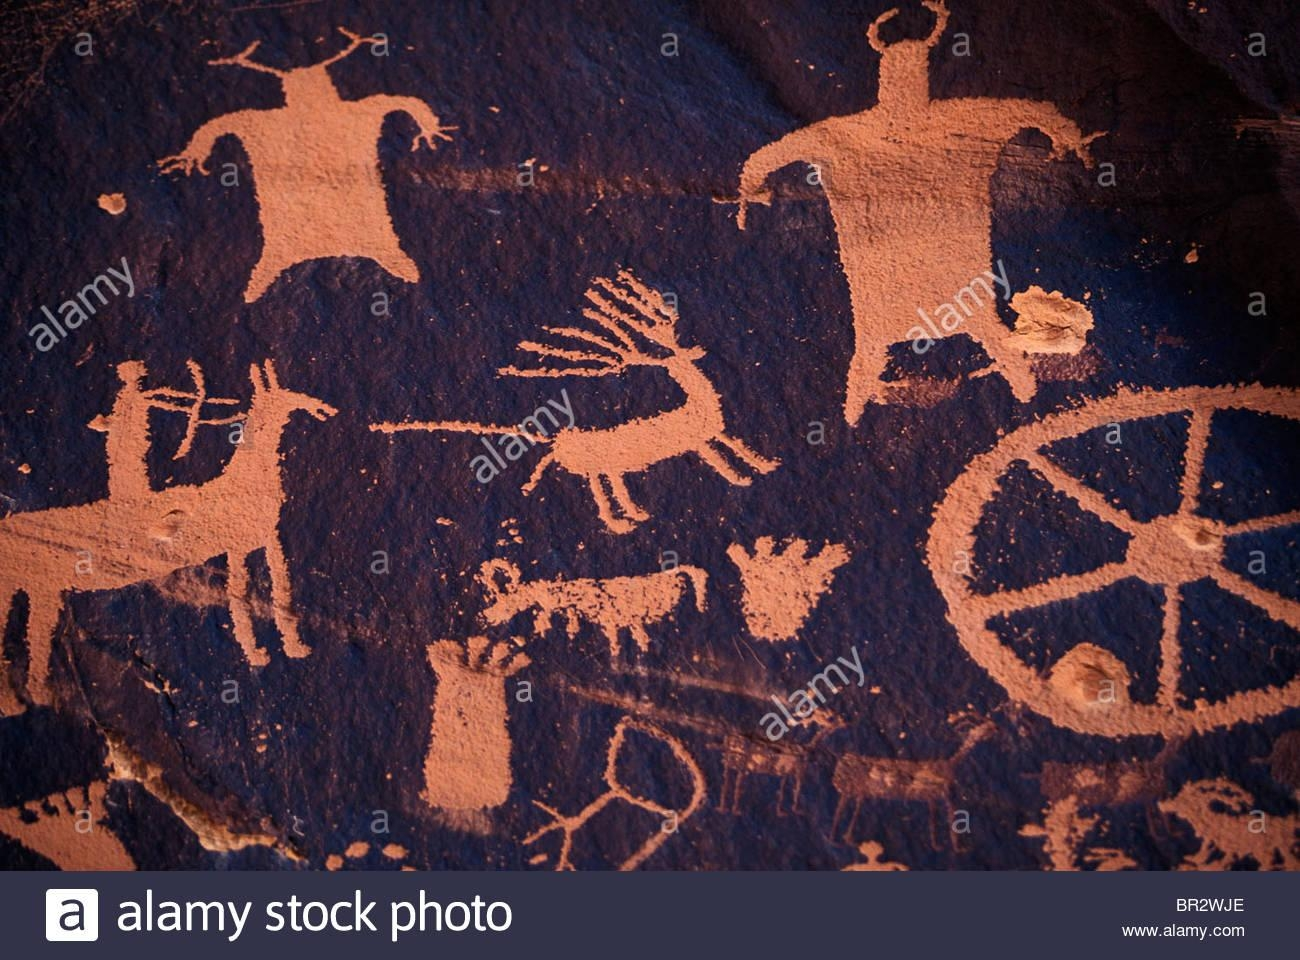 Native American Cave Art/wall Drawings Stock Photo, Royalty Free Within Native American Wall Art (Image 14 of 20)